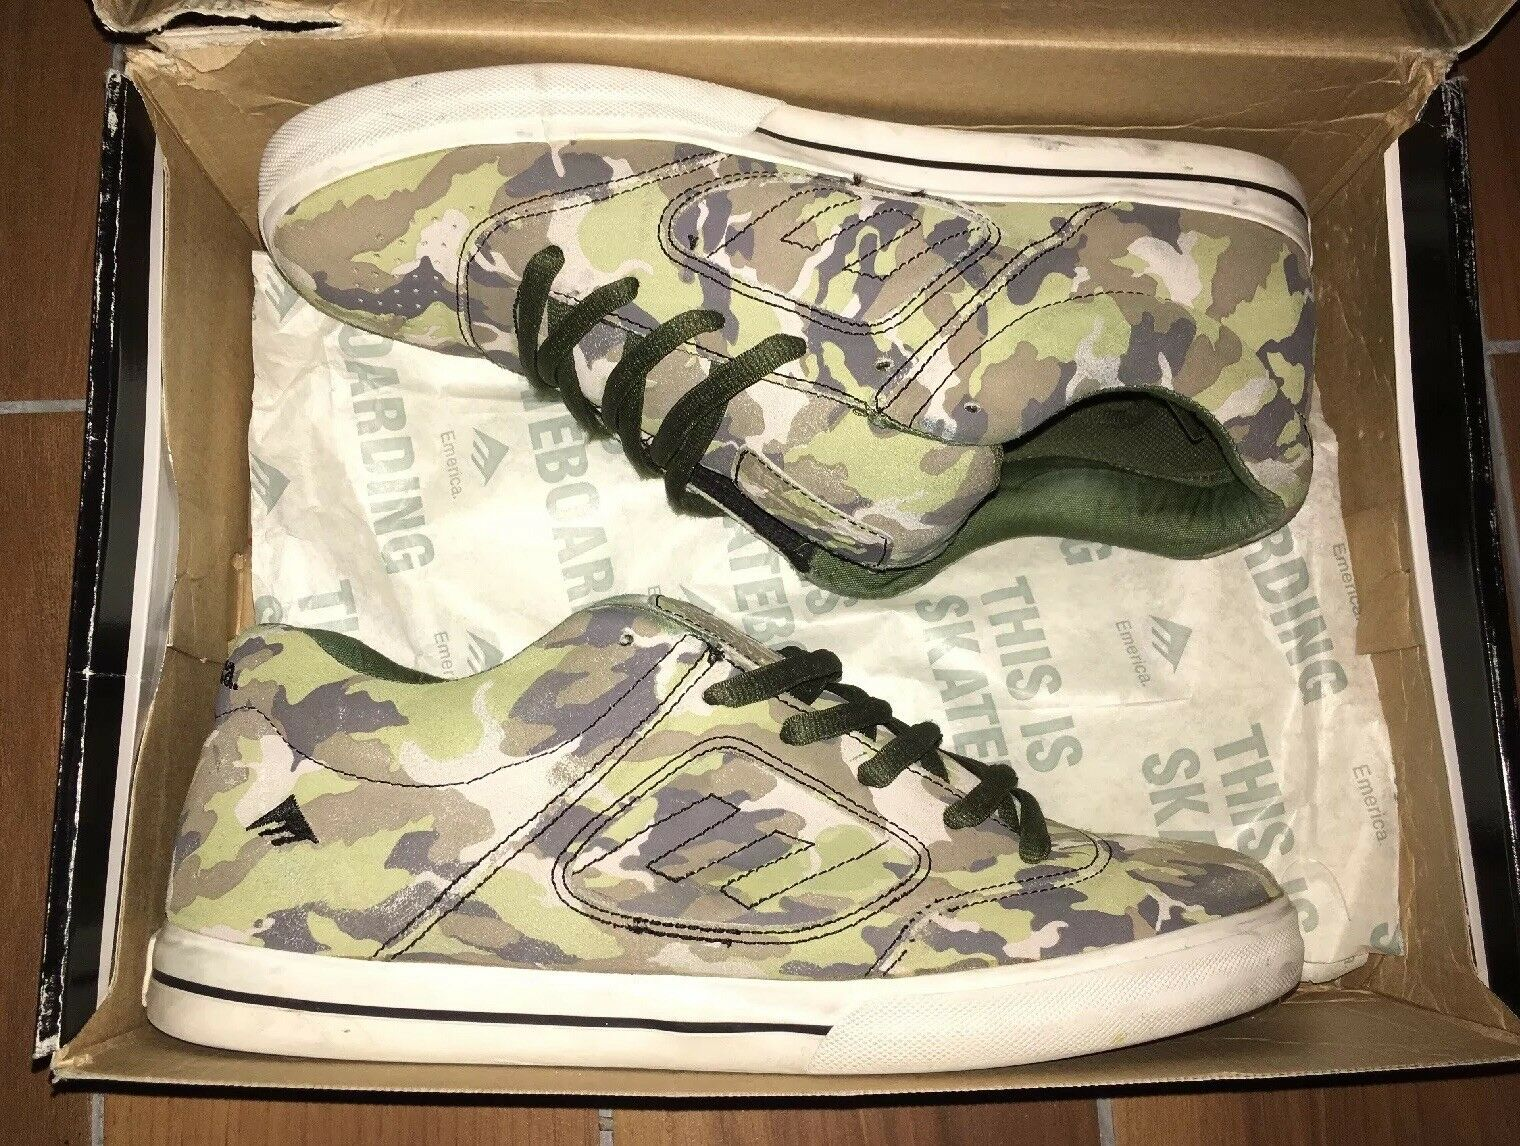 new products a21a3 53b68 Man Woman EMERICA REYNOLDS 3 3 3 CAMO Good design Selected materials  Current shape 8cddbe